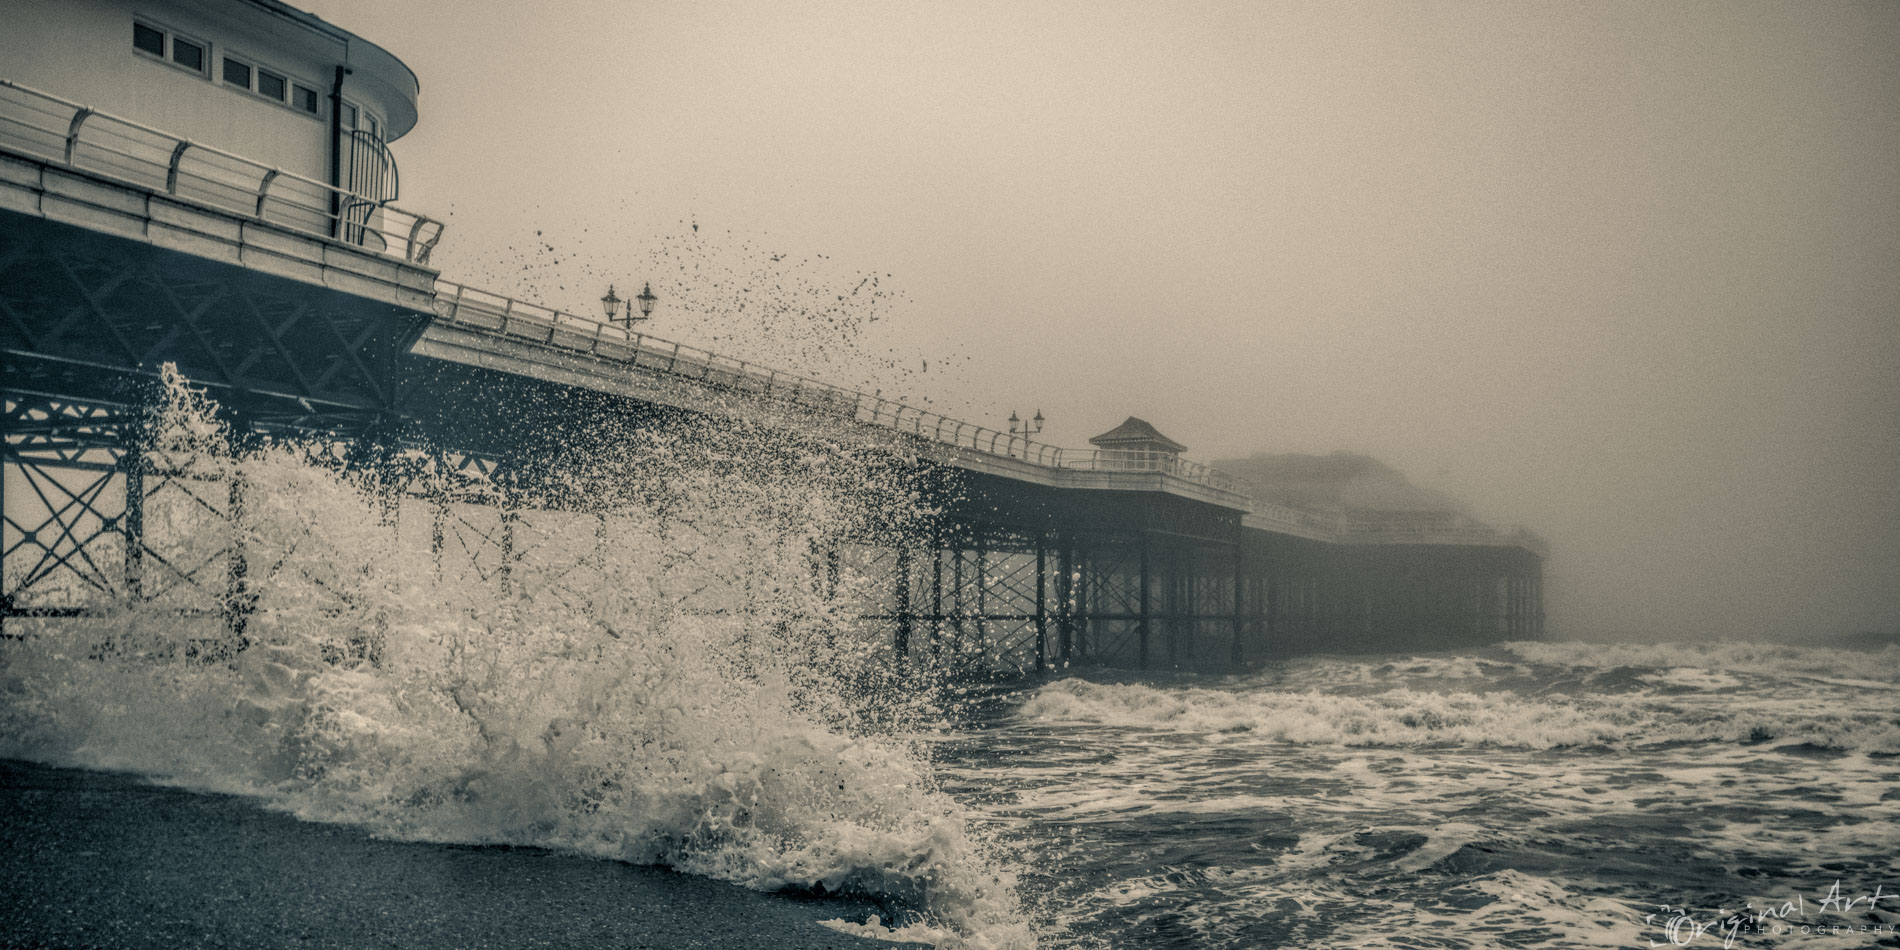 Cromer_on_a_foggy_day-6.jpg